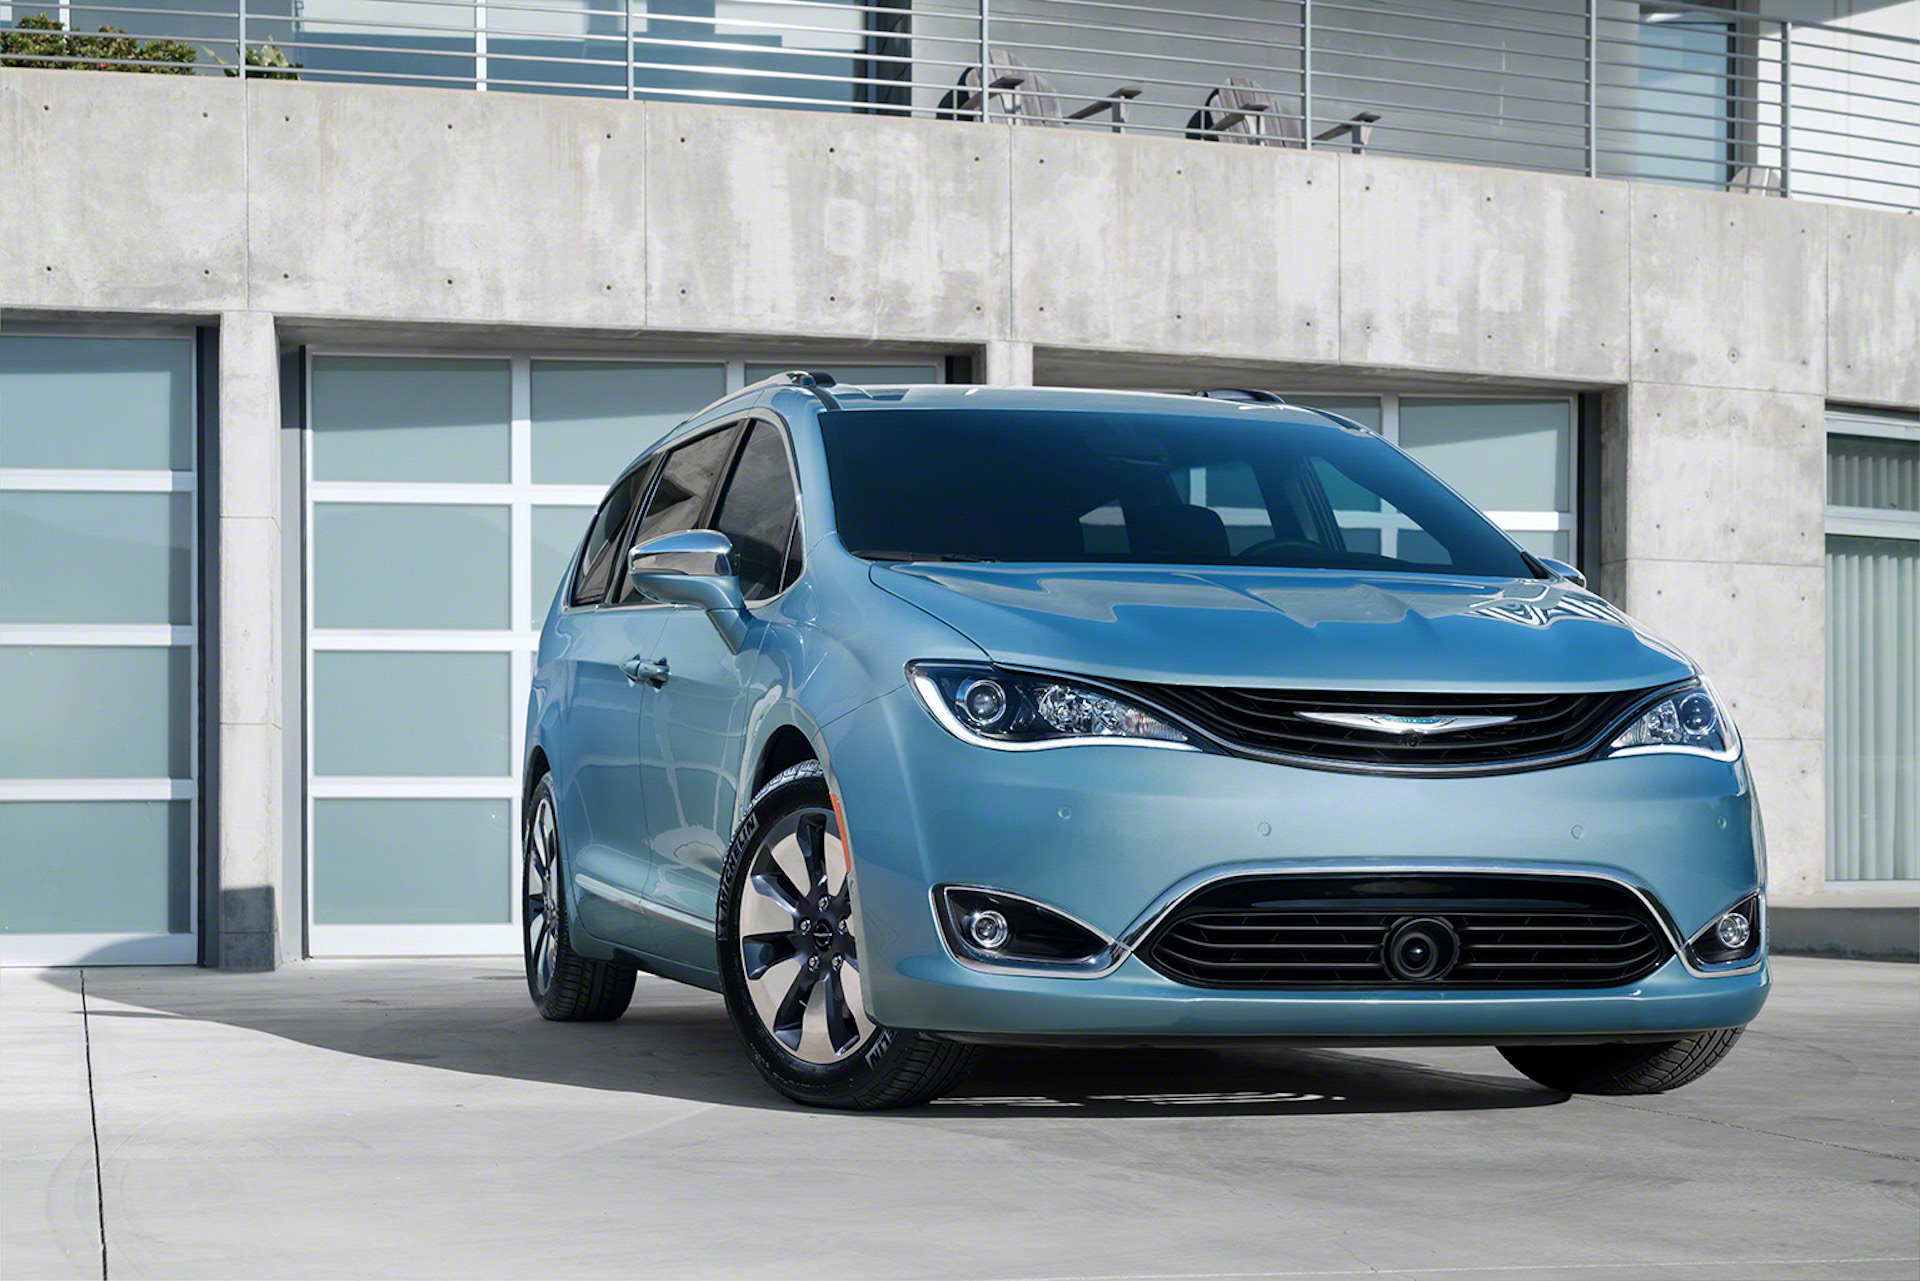 2017 Chrysler Pacifica Hybrid Plug In Minivan 33 Miles Of Range 84 Mpge Epa Ratings